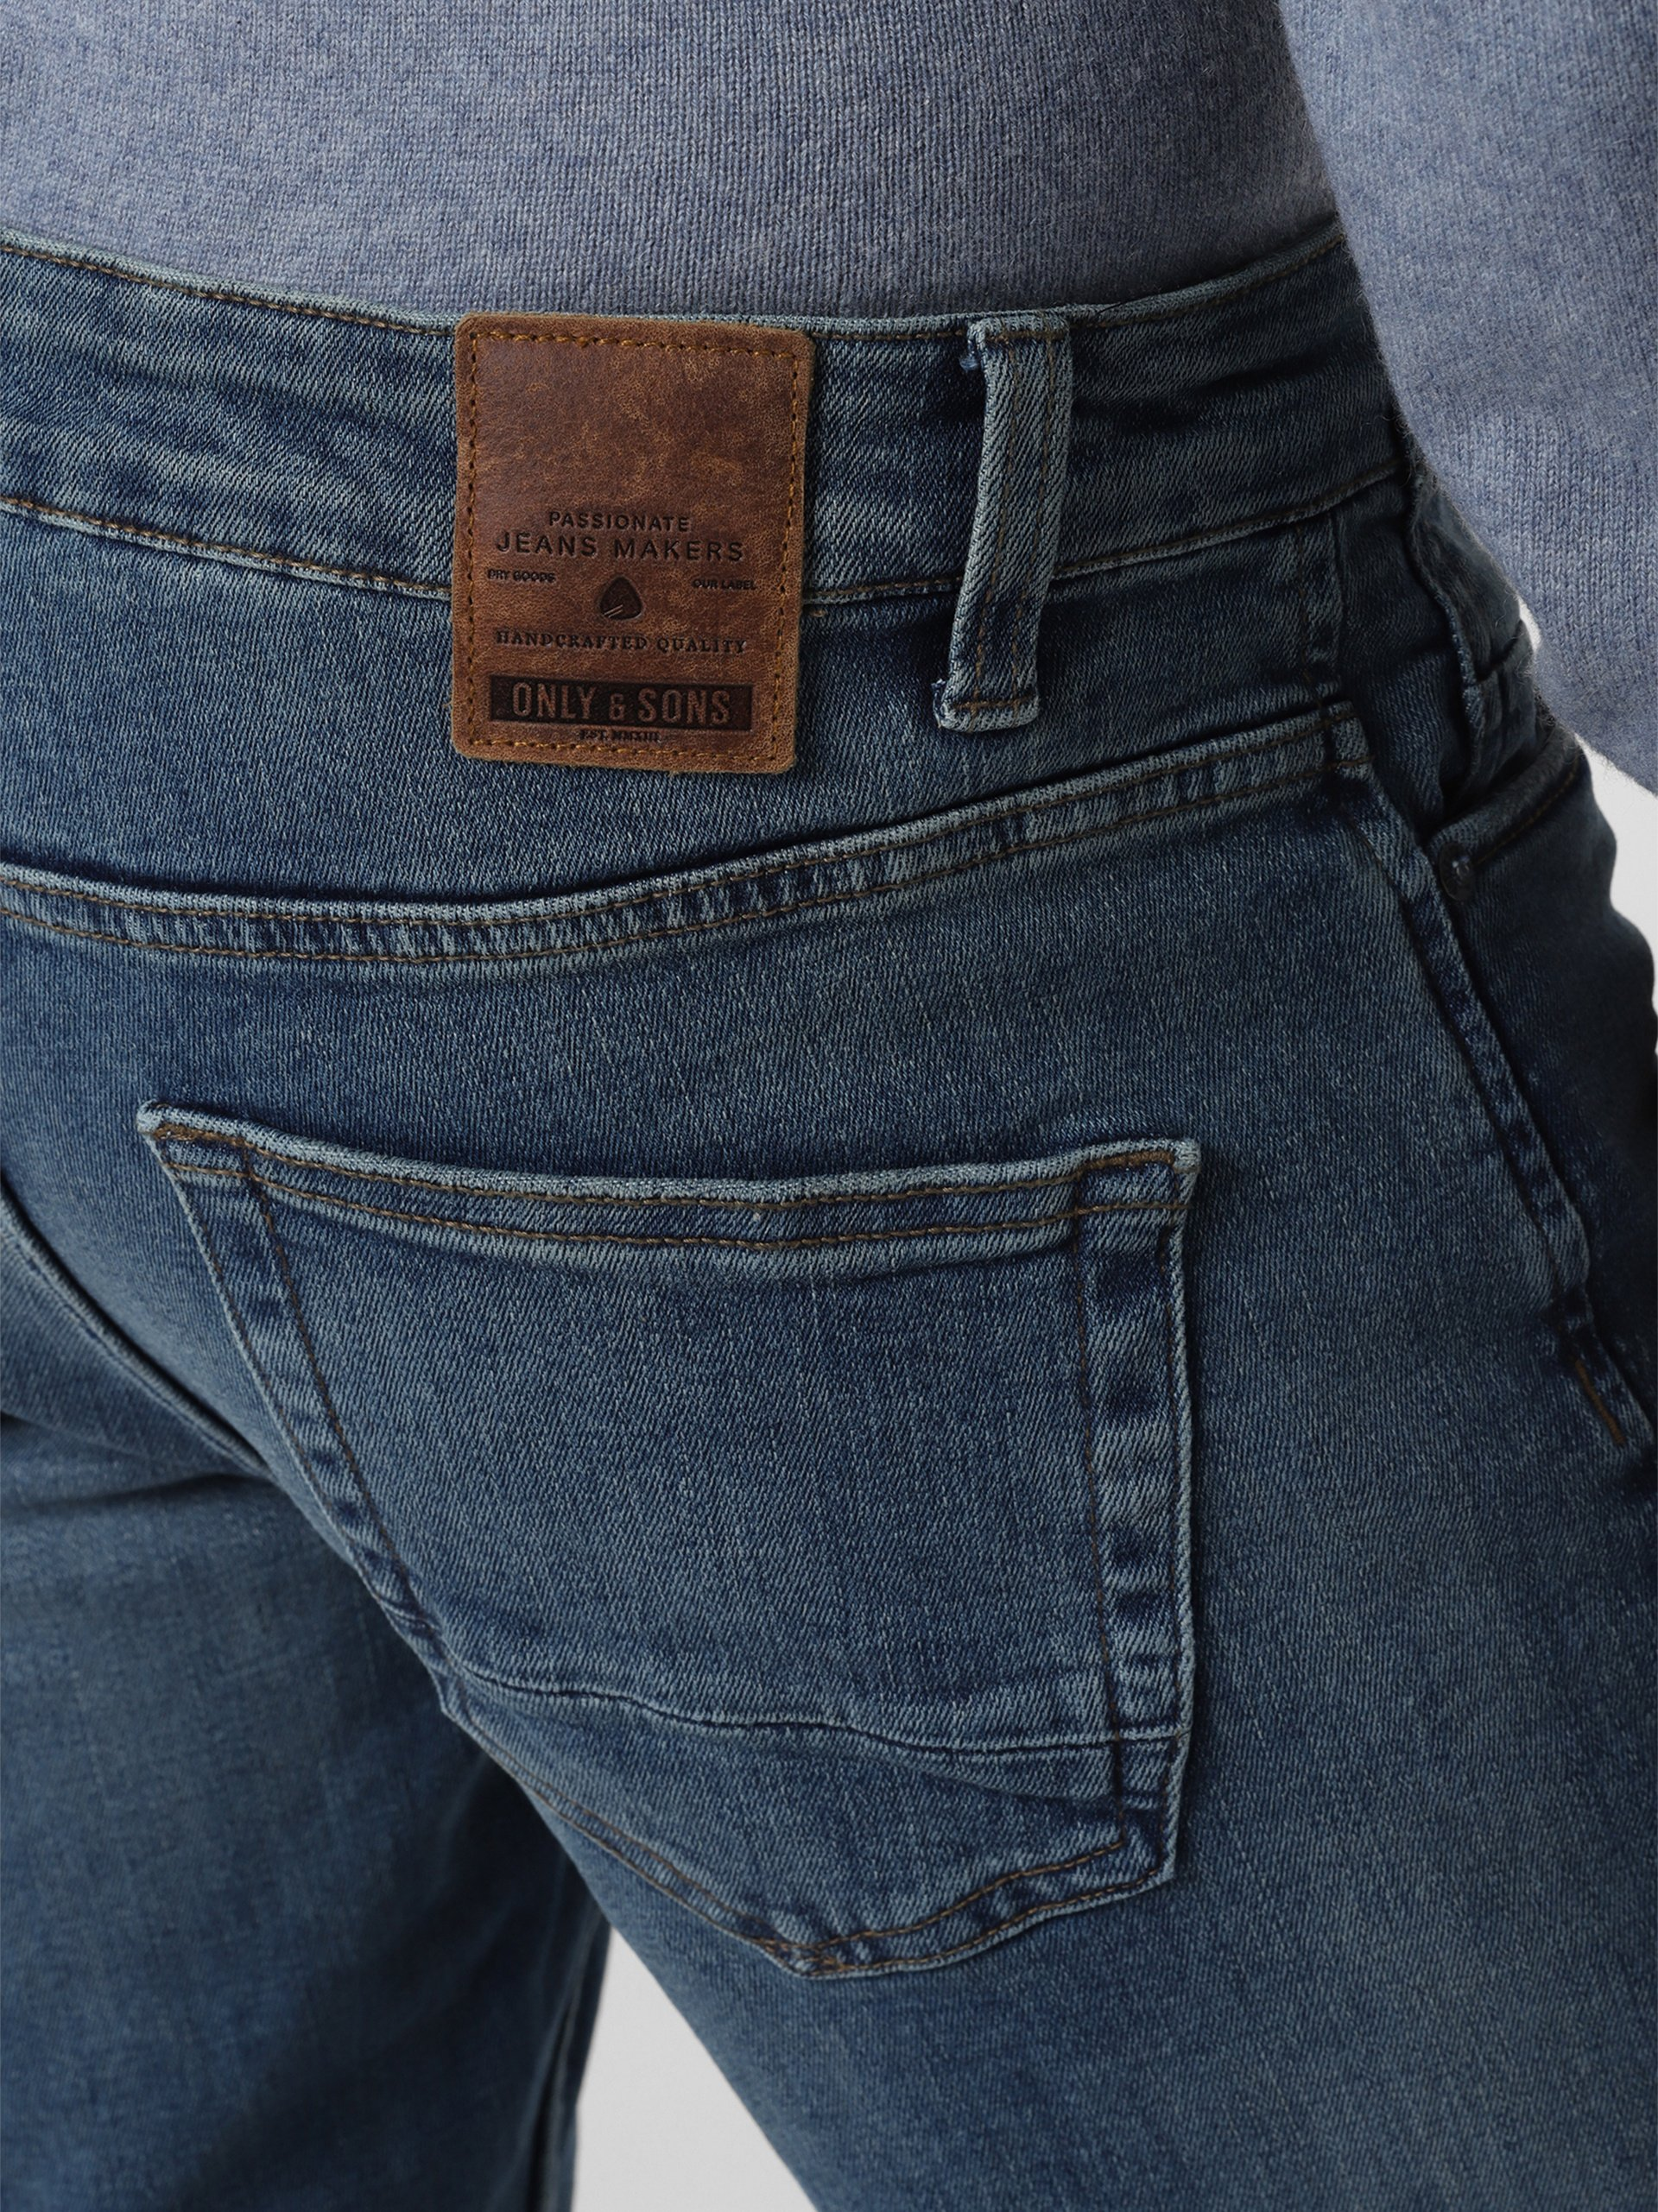 Only&Sons Herren Jeans - Onsweft